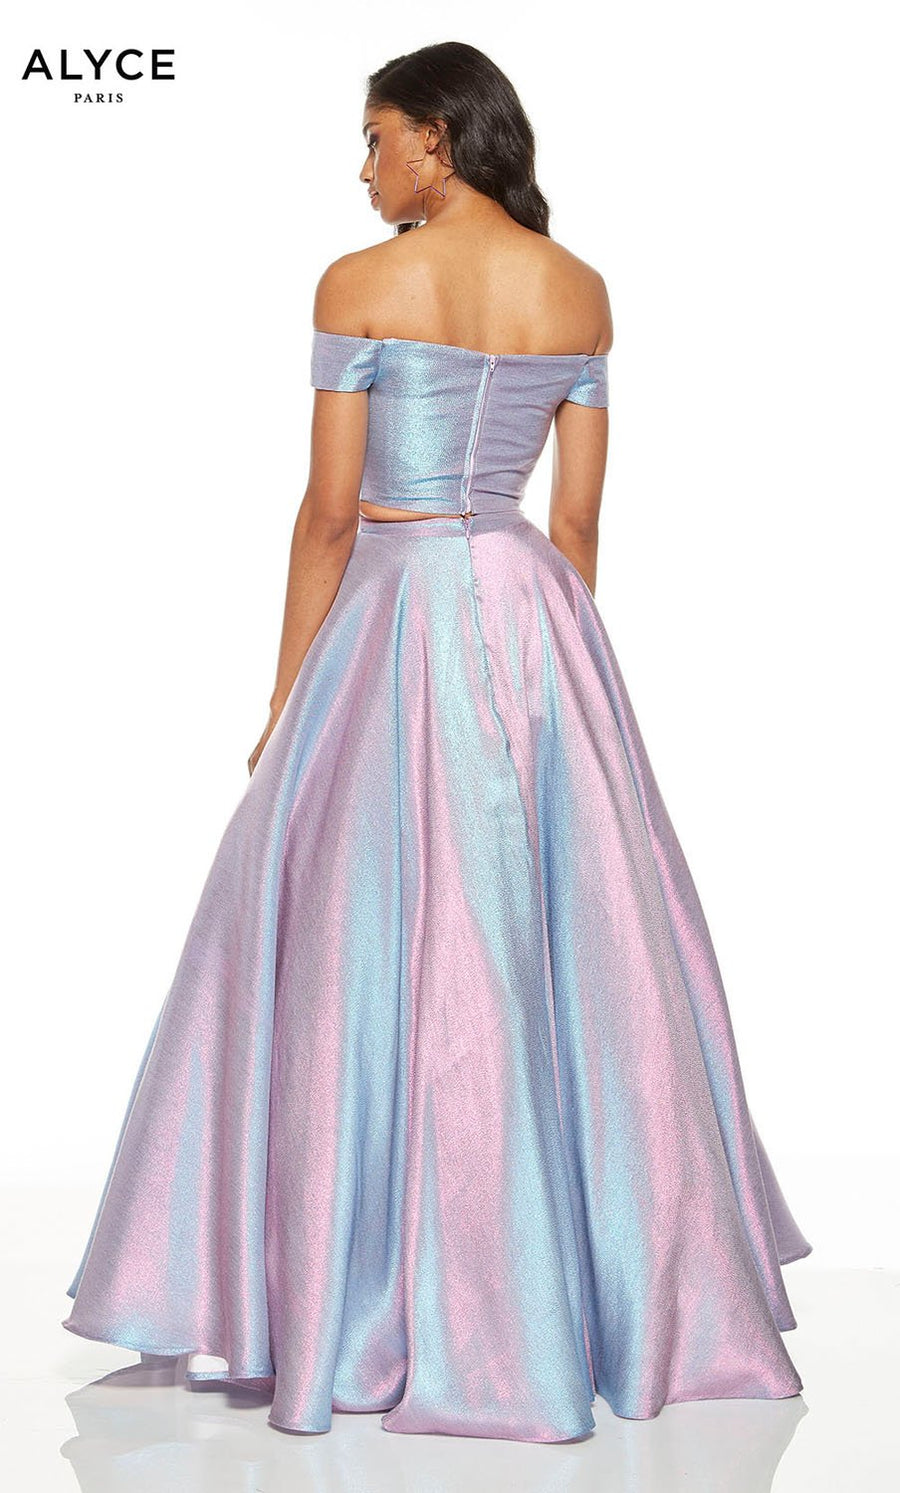 Alyce Paris 1530 prom dress images.  Alyce Paris 1530 is available in these colors: Unicorn  Violet , Marigold, Magenta.